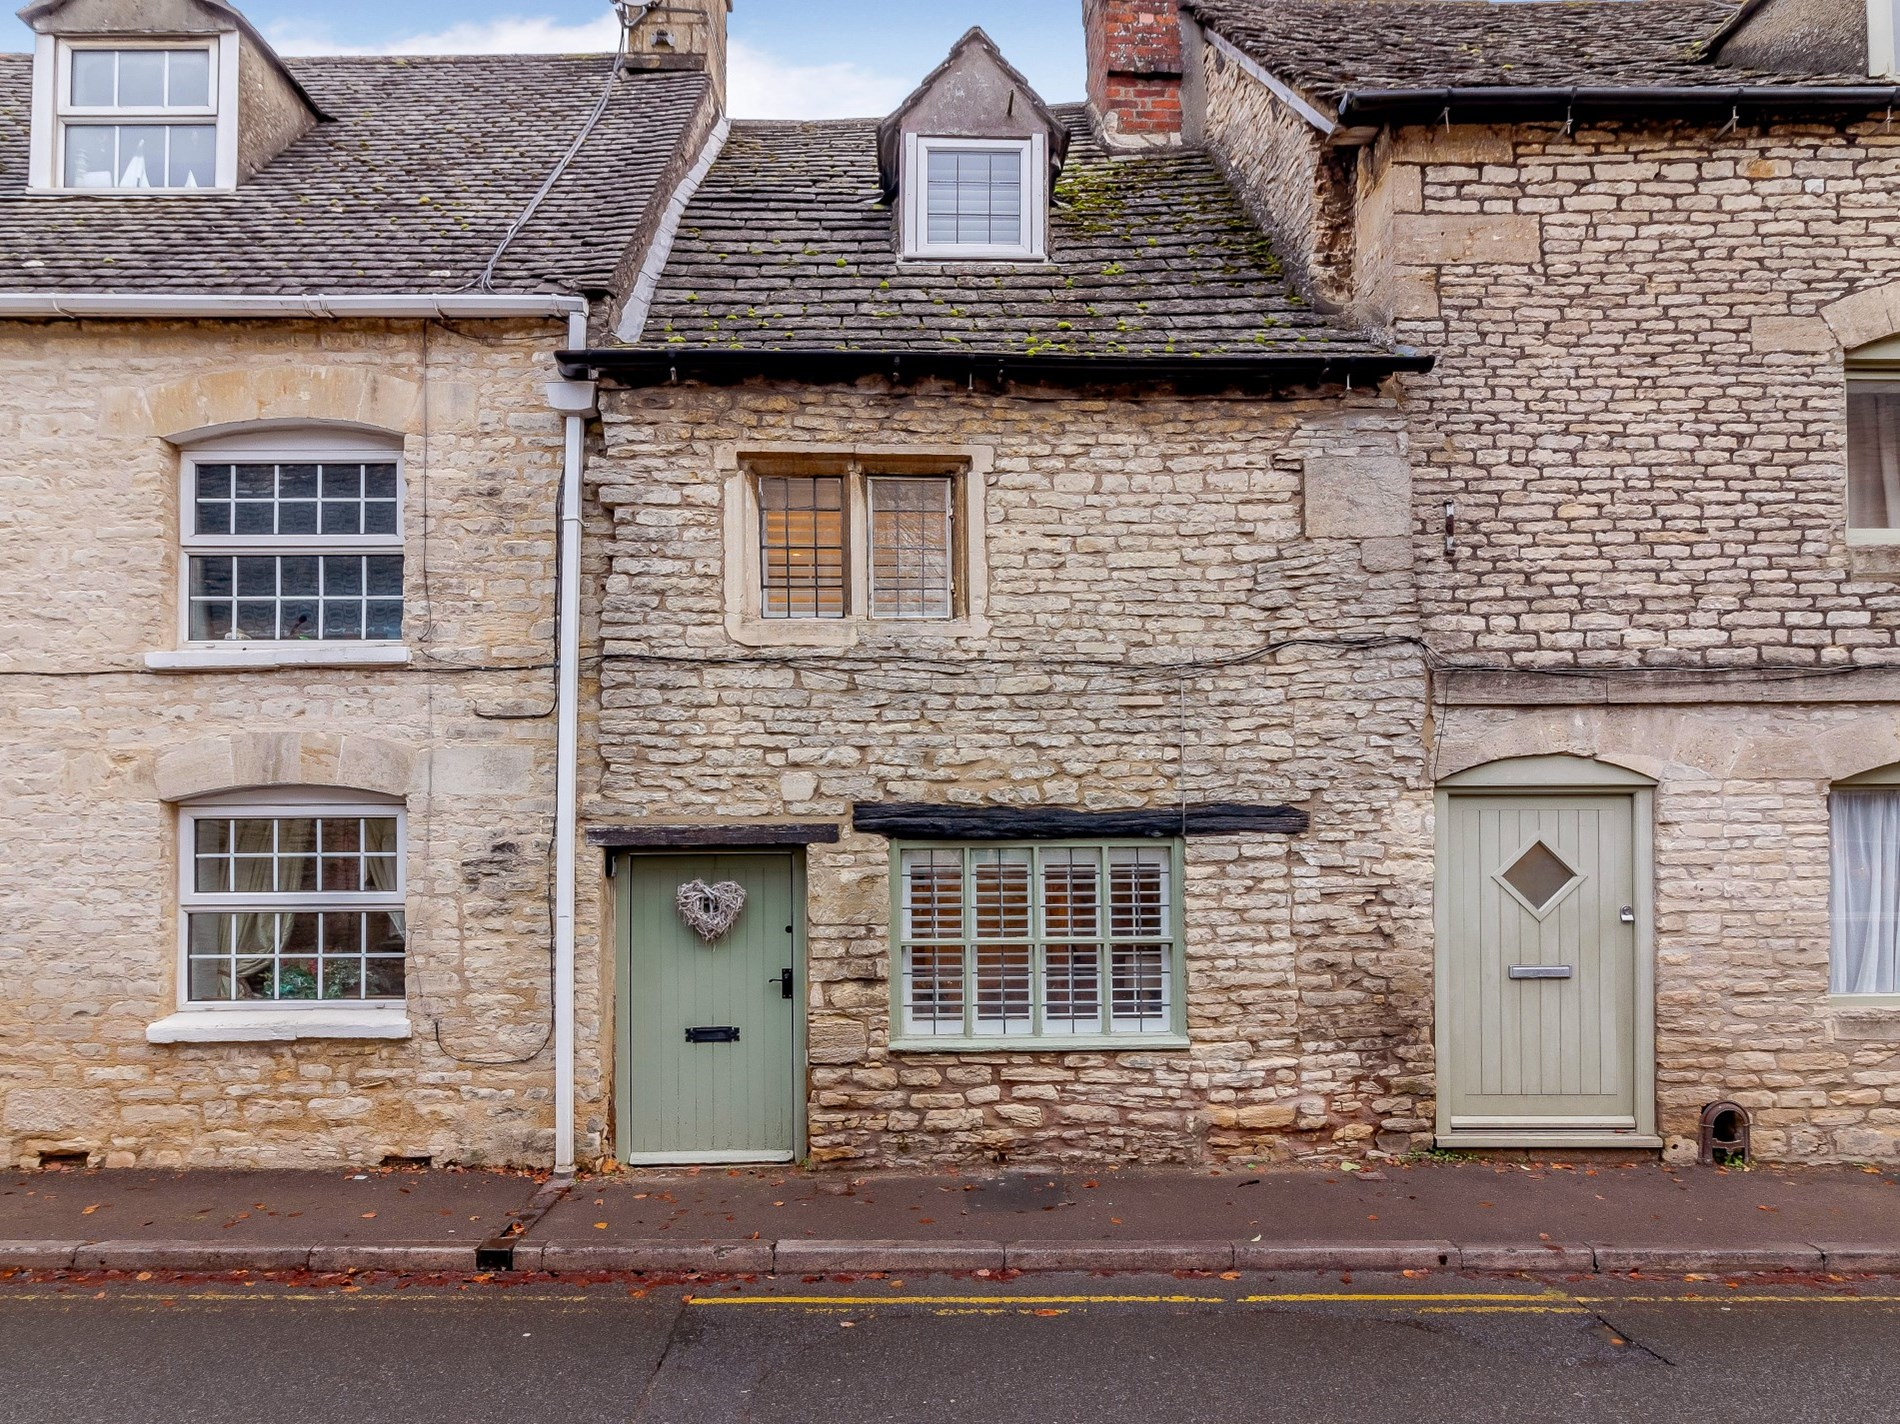 Traditional stone Cotswold cottage